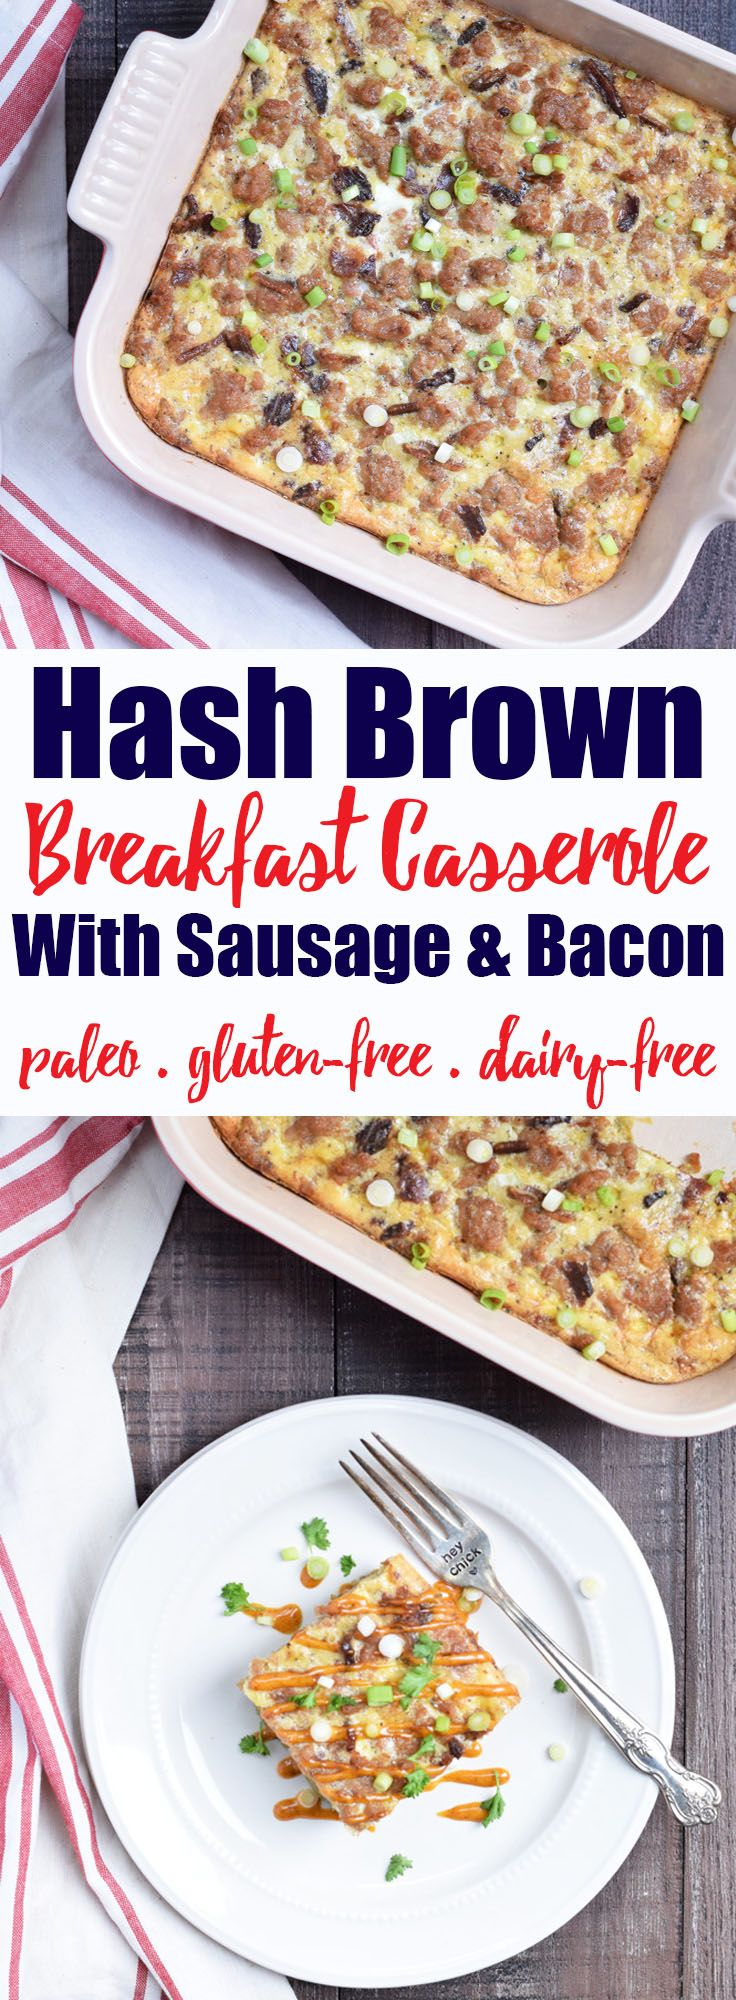 Hash Brown Breakfast Casserole with Sausage & Bacon from Living Loving Paleo! | paleo, gluten-free, dairy-free & Whole30 compliant! | A super easy and delicious make ahead breakfast!